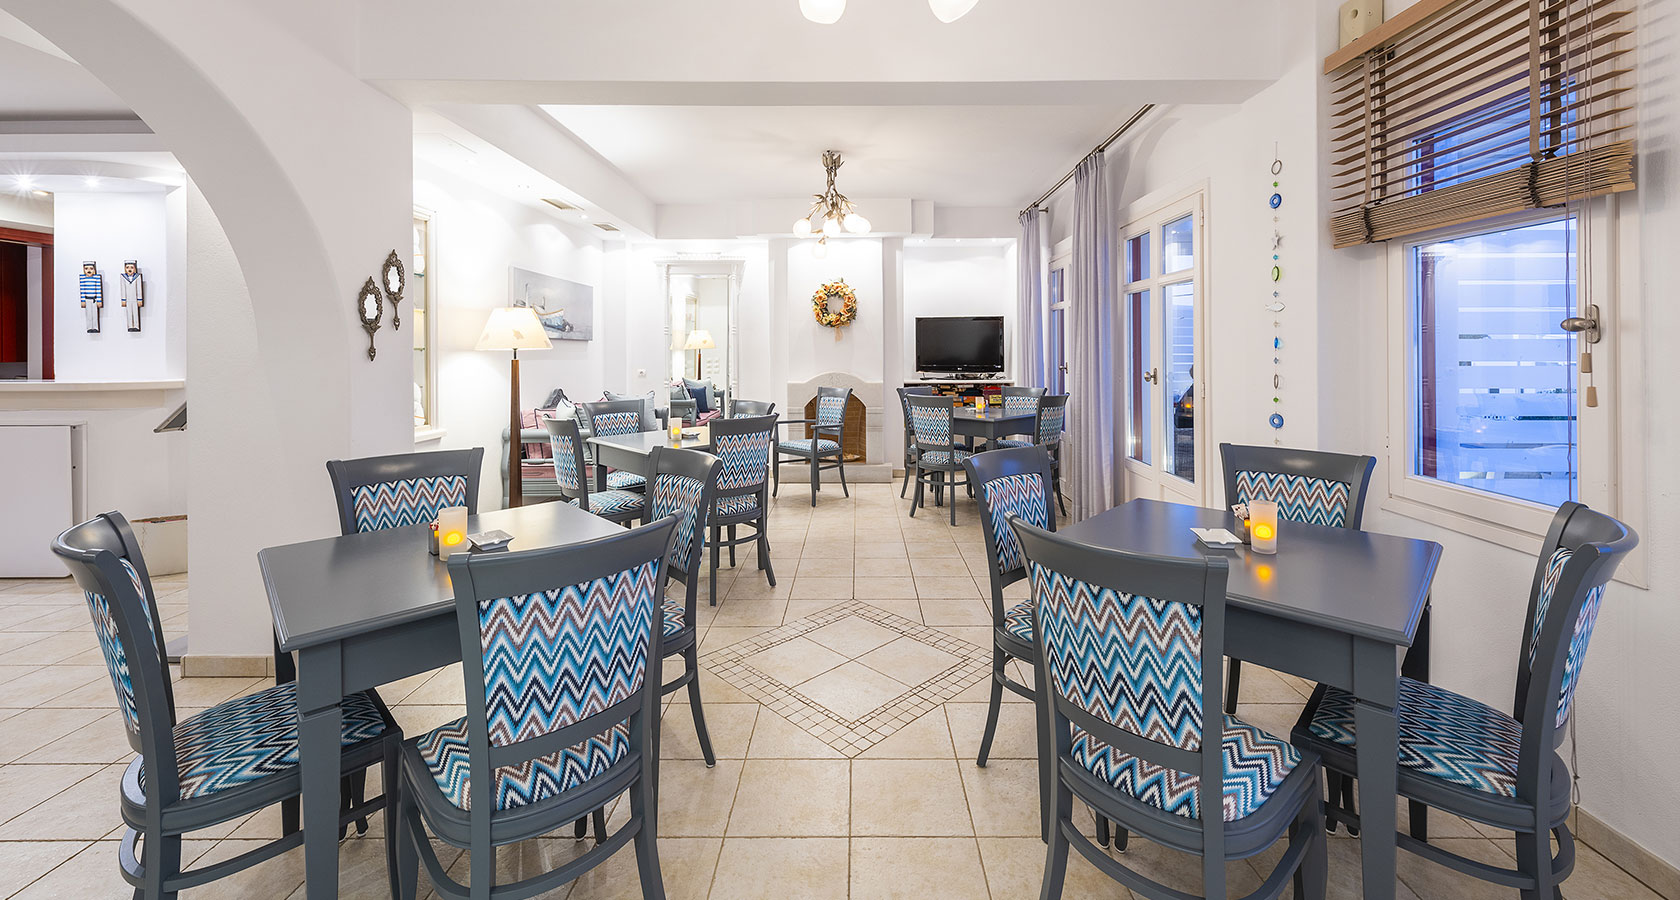 Breakfast area of Stelia Mare Hotel in Paros